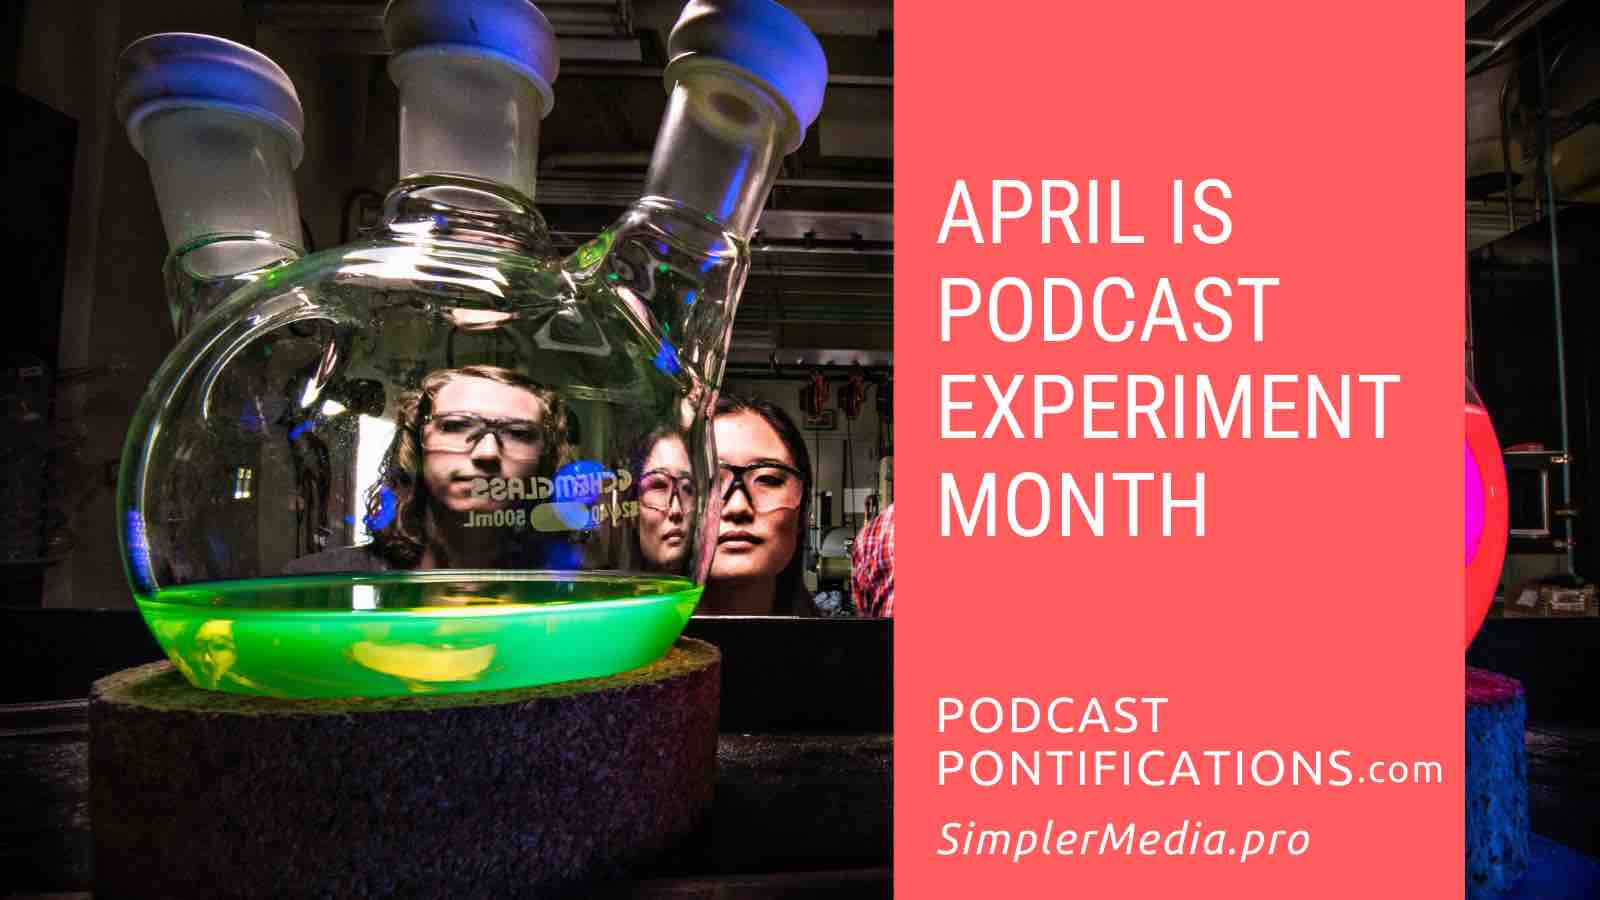 April Is Podcast Experiment Month